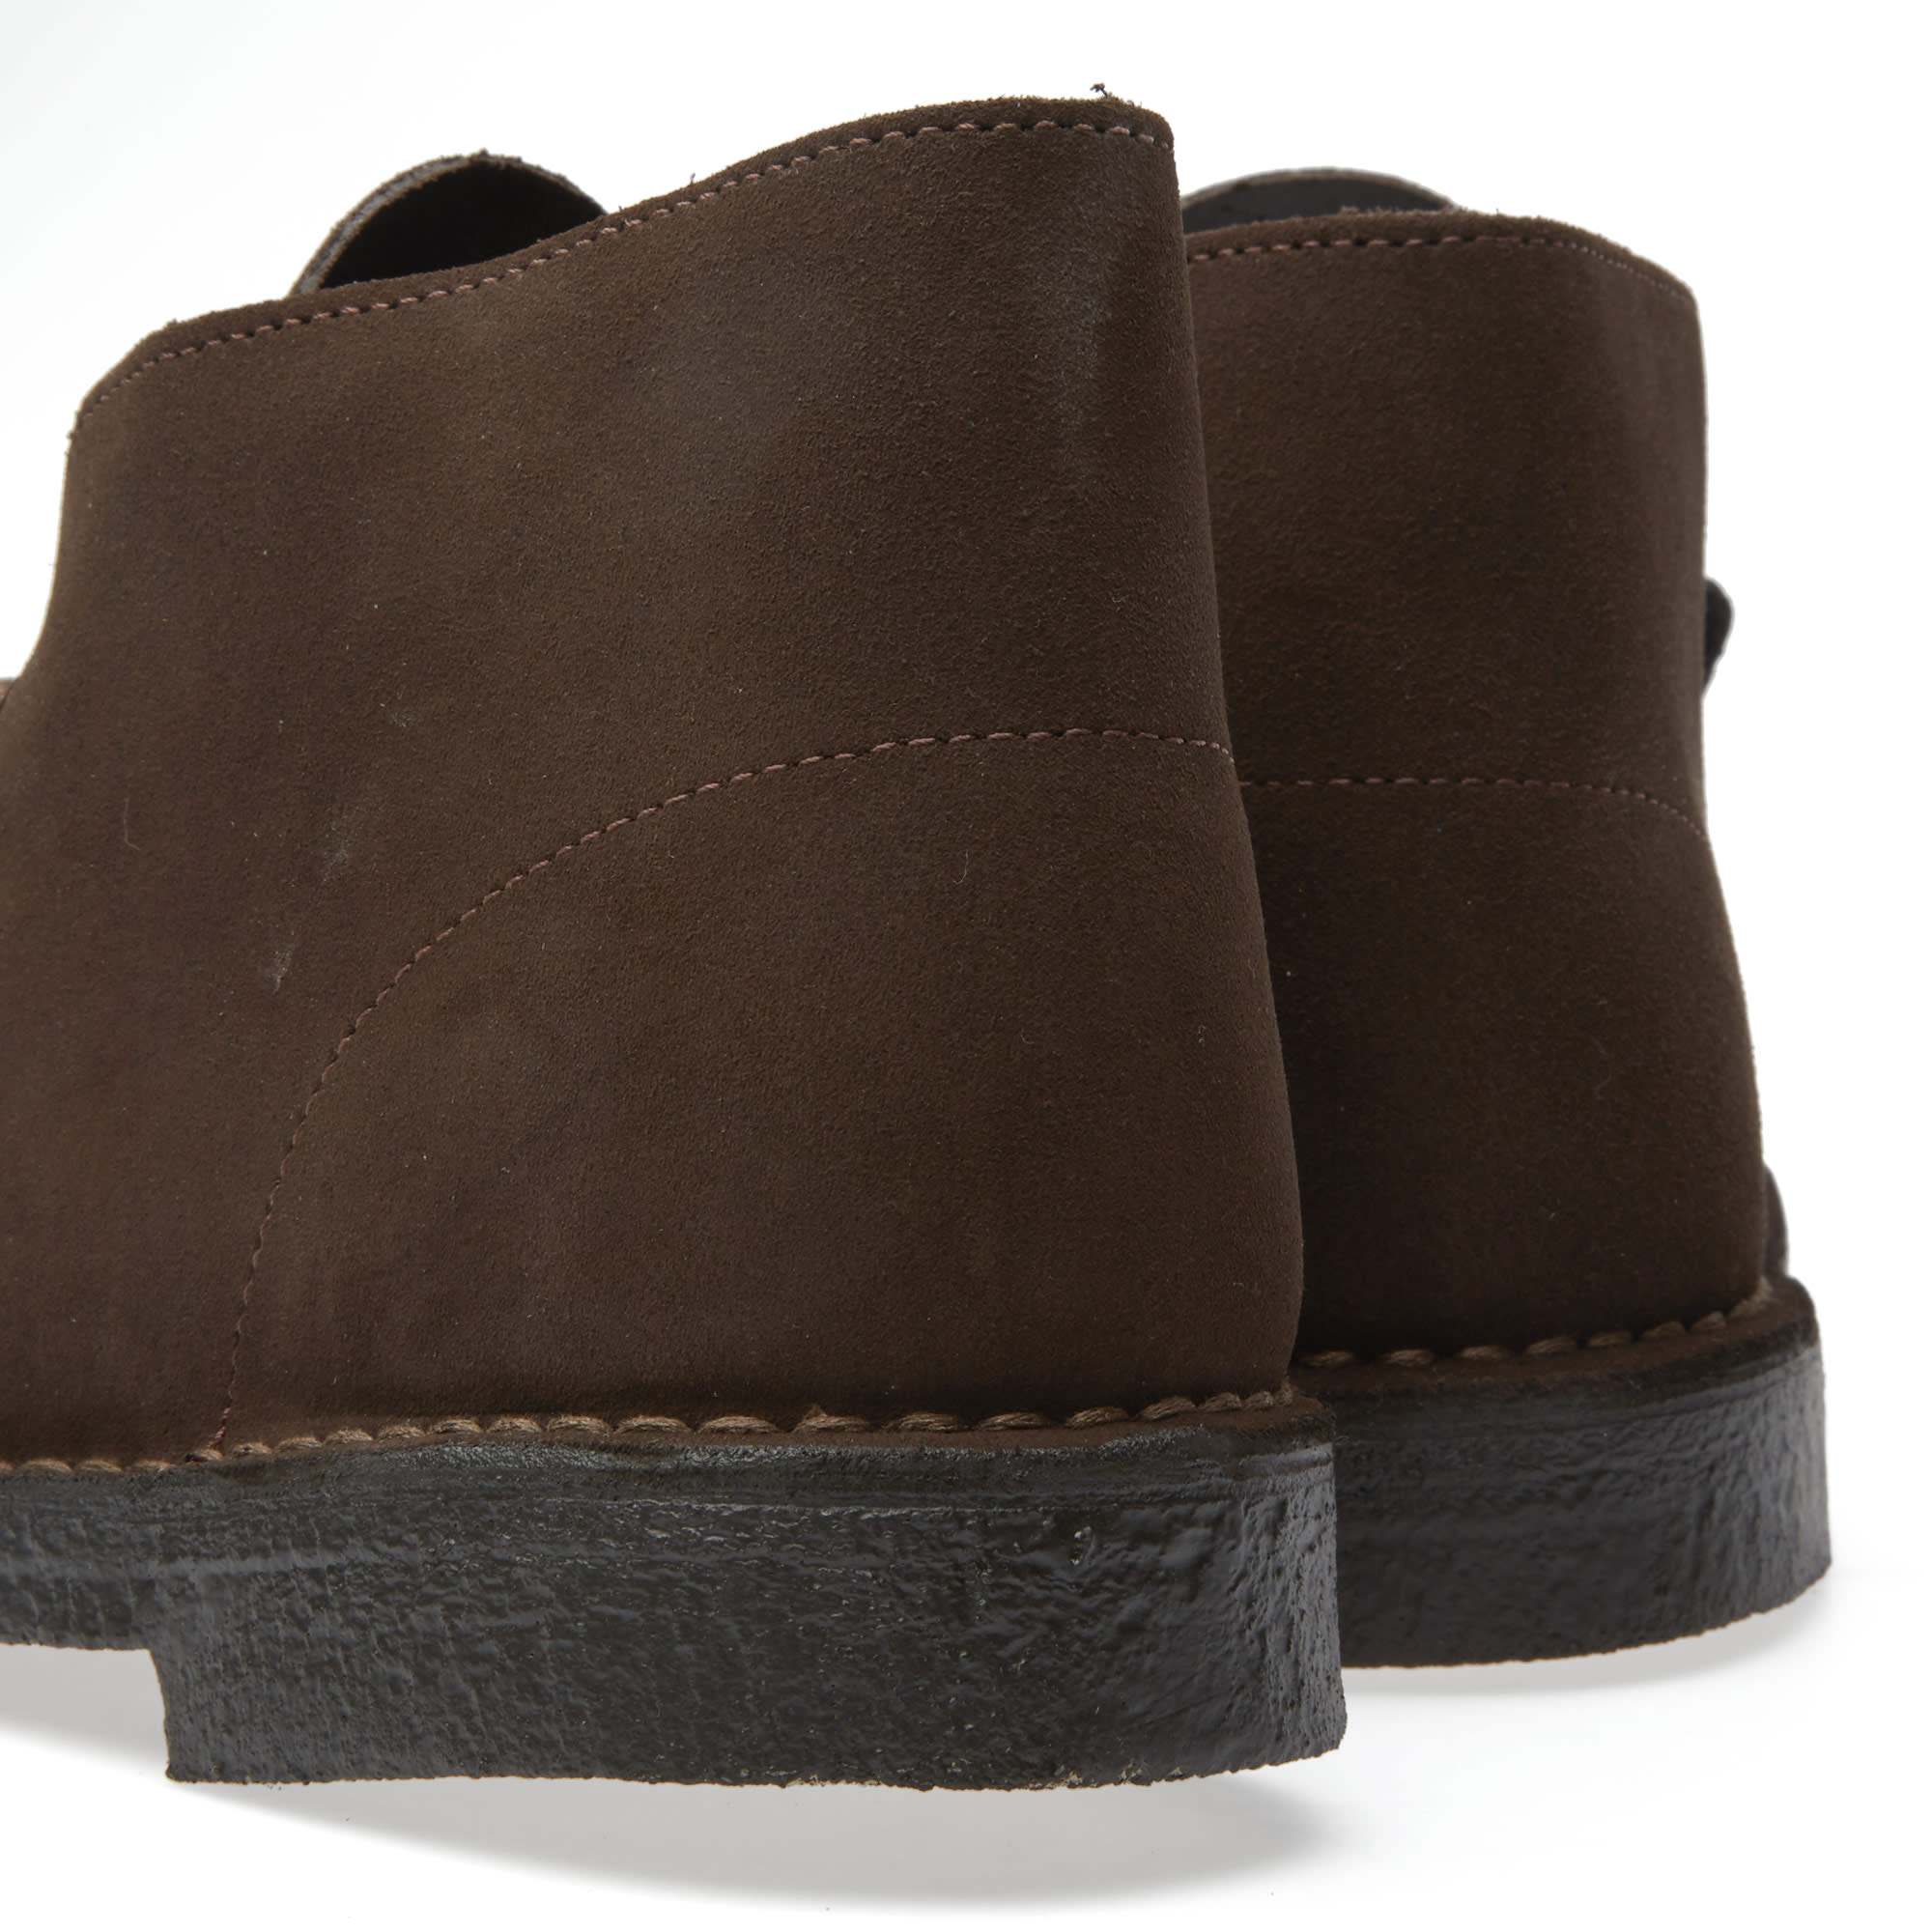 clarks originals desert boot brown suede. Black Bedroom Furniture Sets. Home Design Ideas